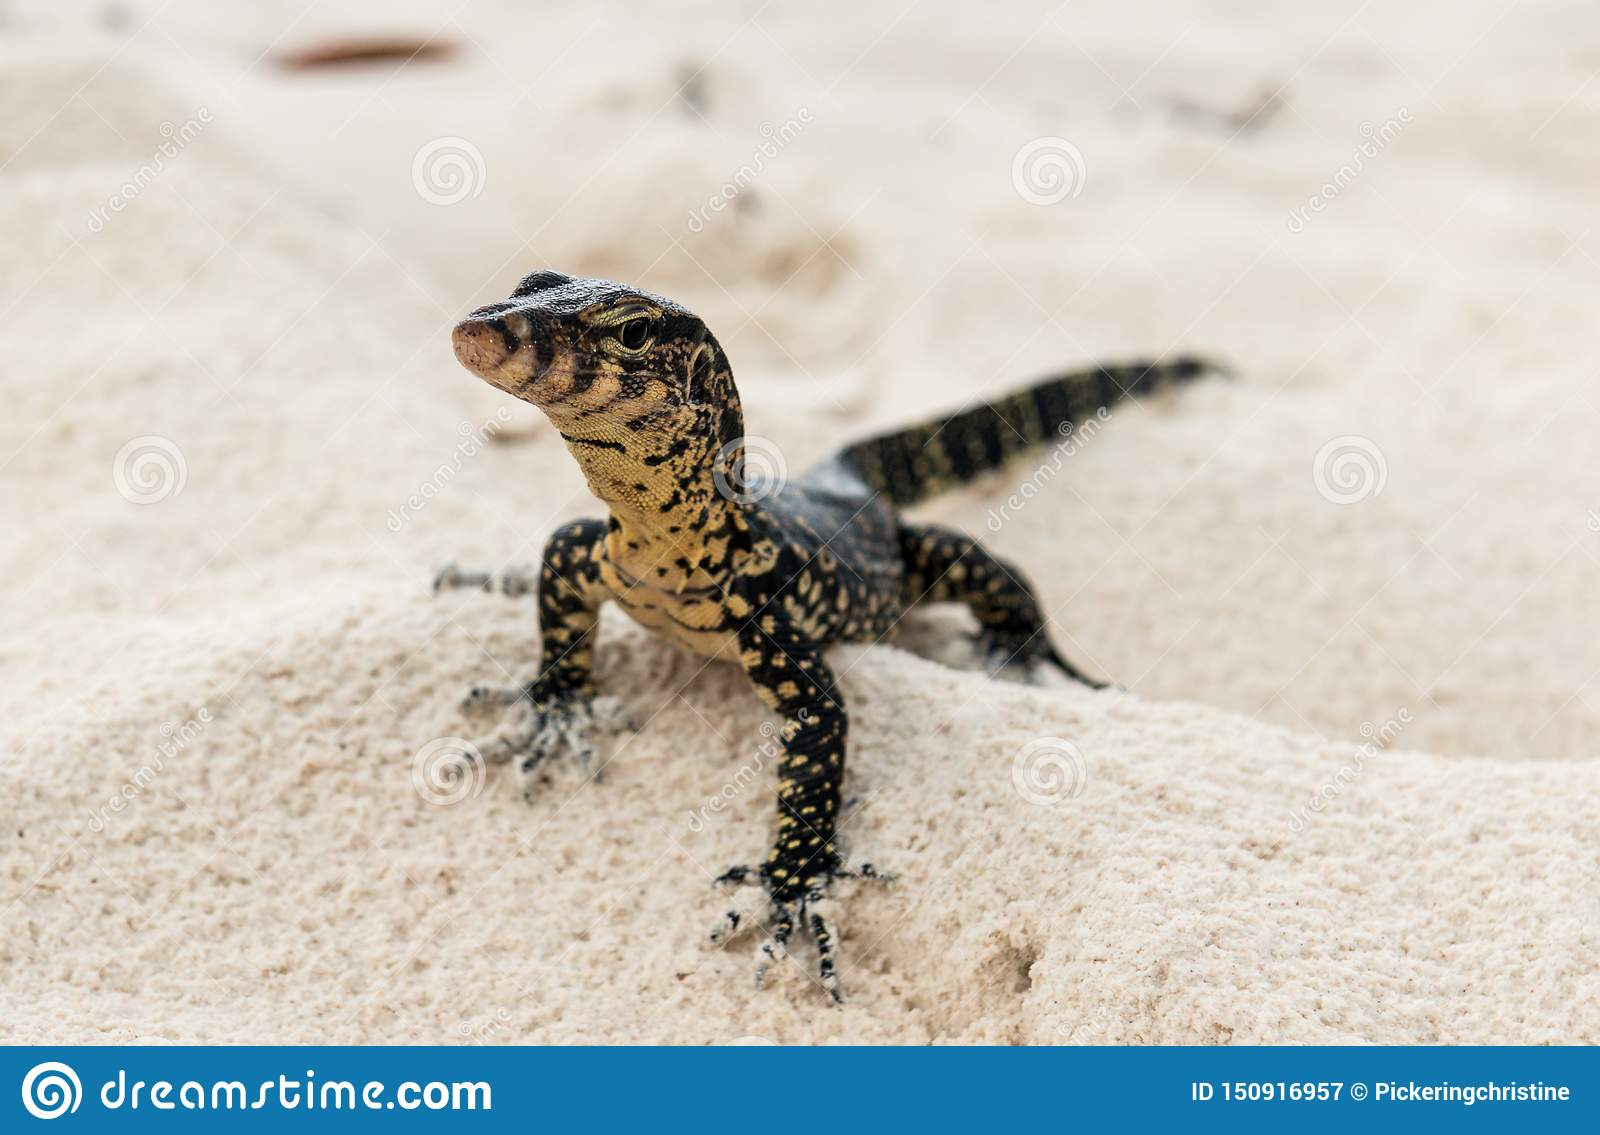 A gecko hunts for prey on a Thai beach